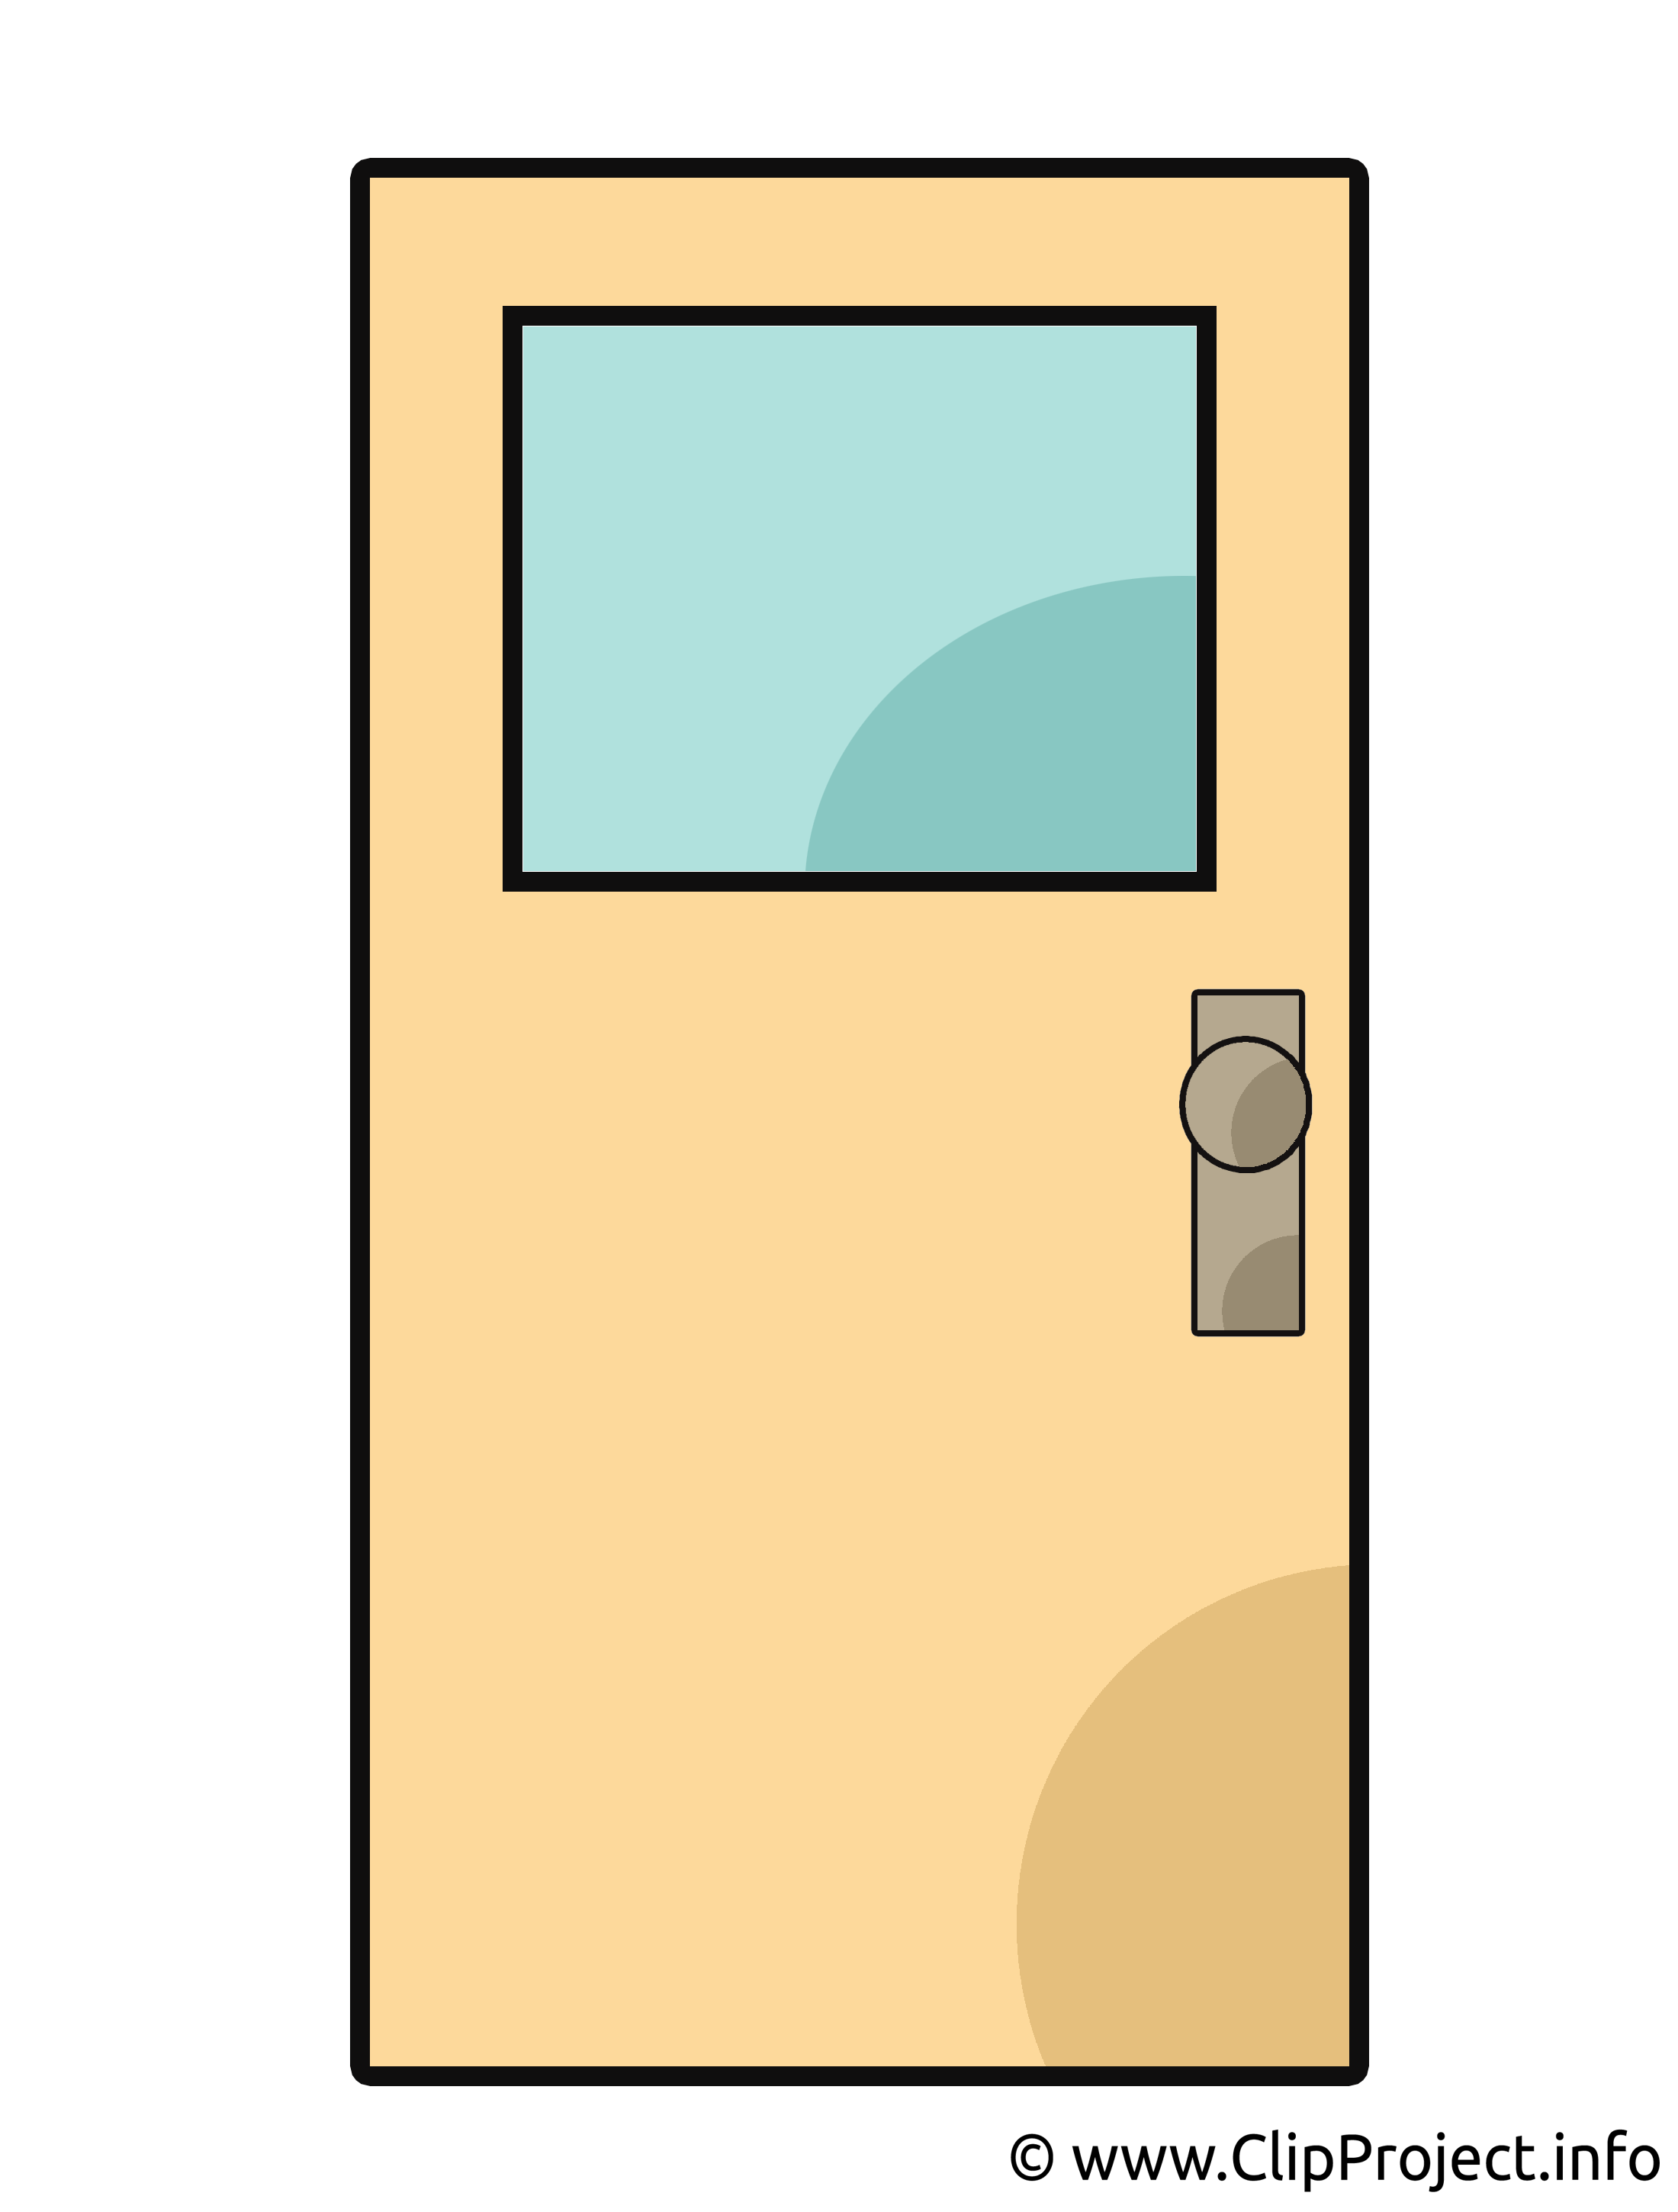 Porte illustration – Biens immobiliers images cliparts